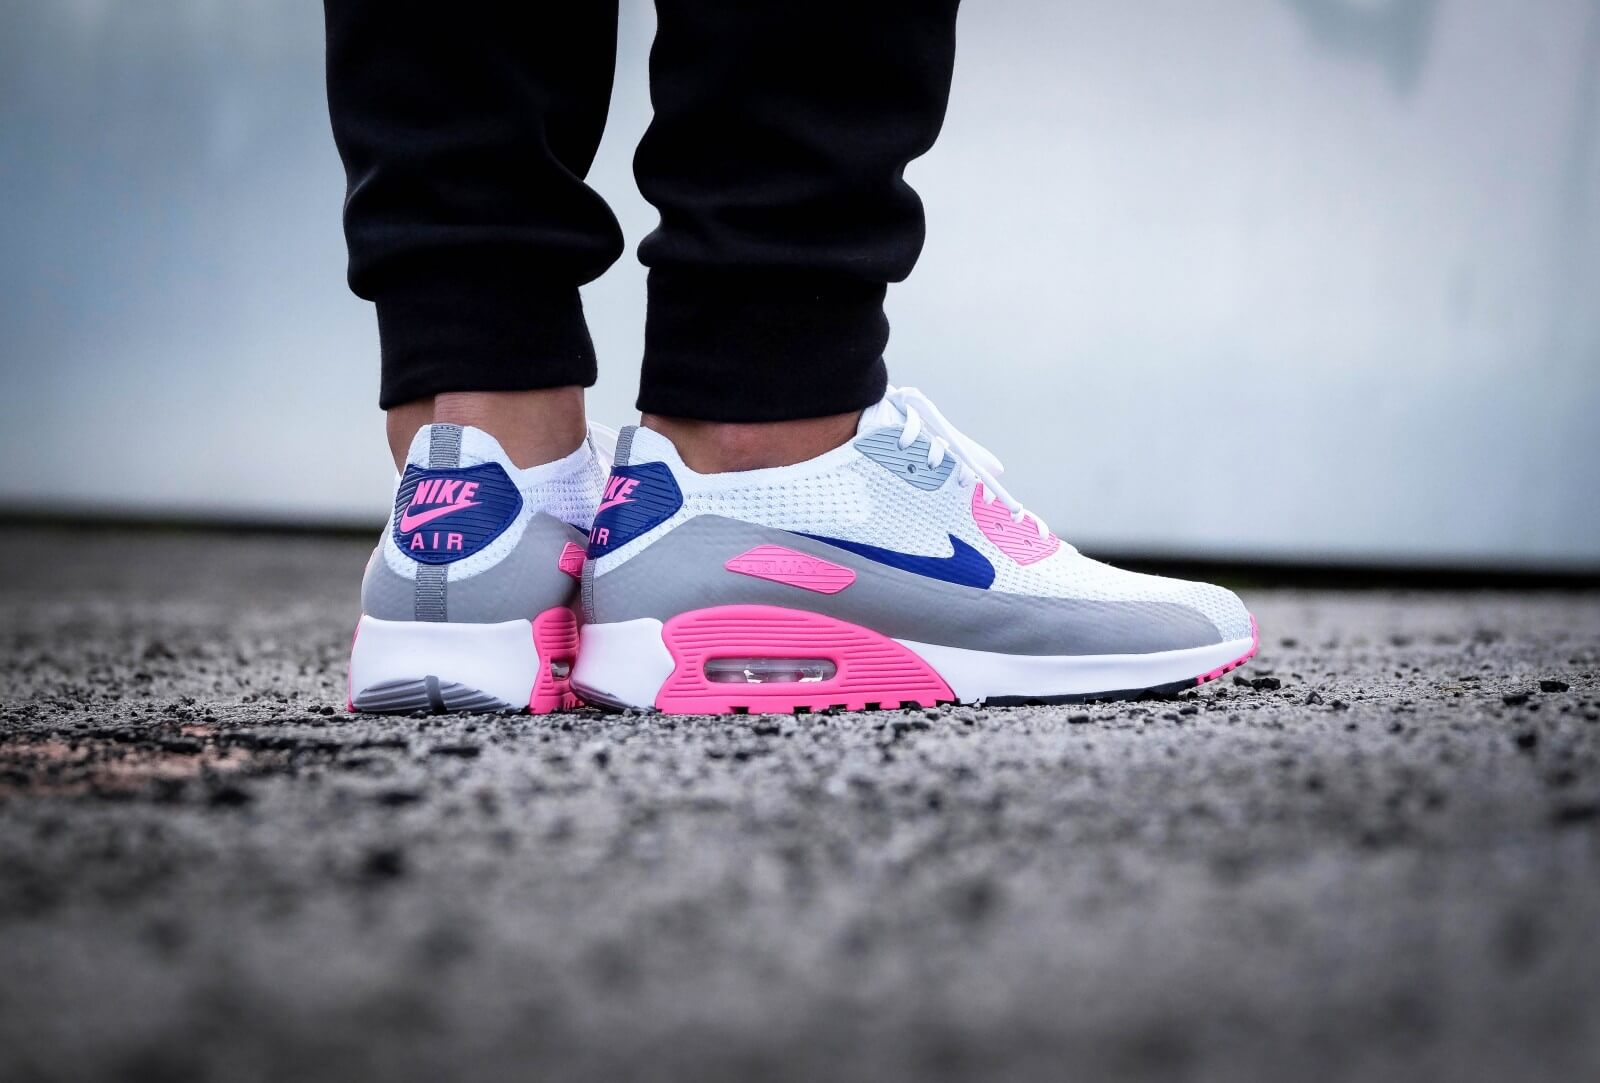 Nike AIR MAX 90 ULTRA 2.0 FLYKNIT WOMENS WhitePinkBlue